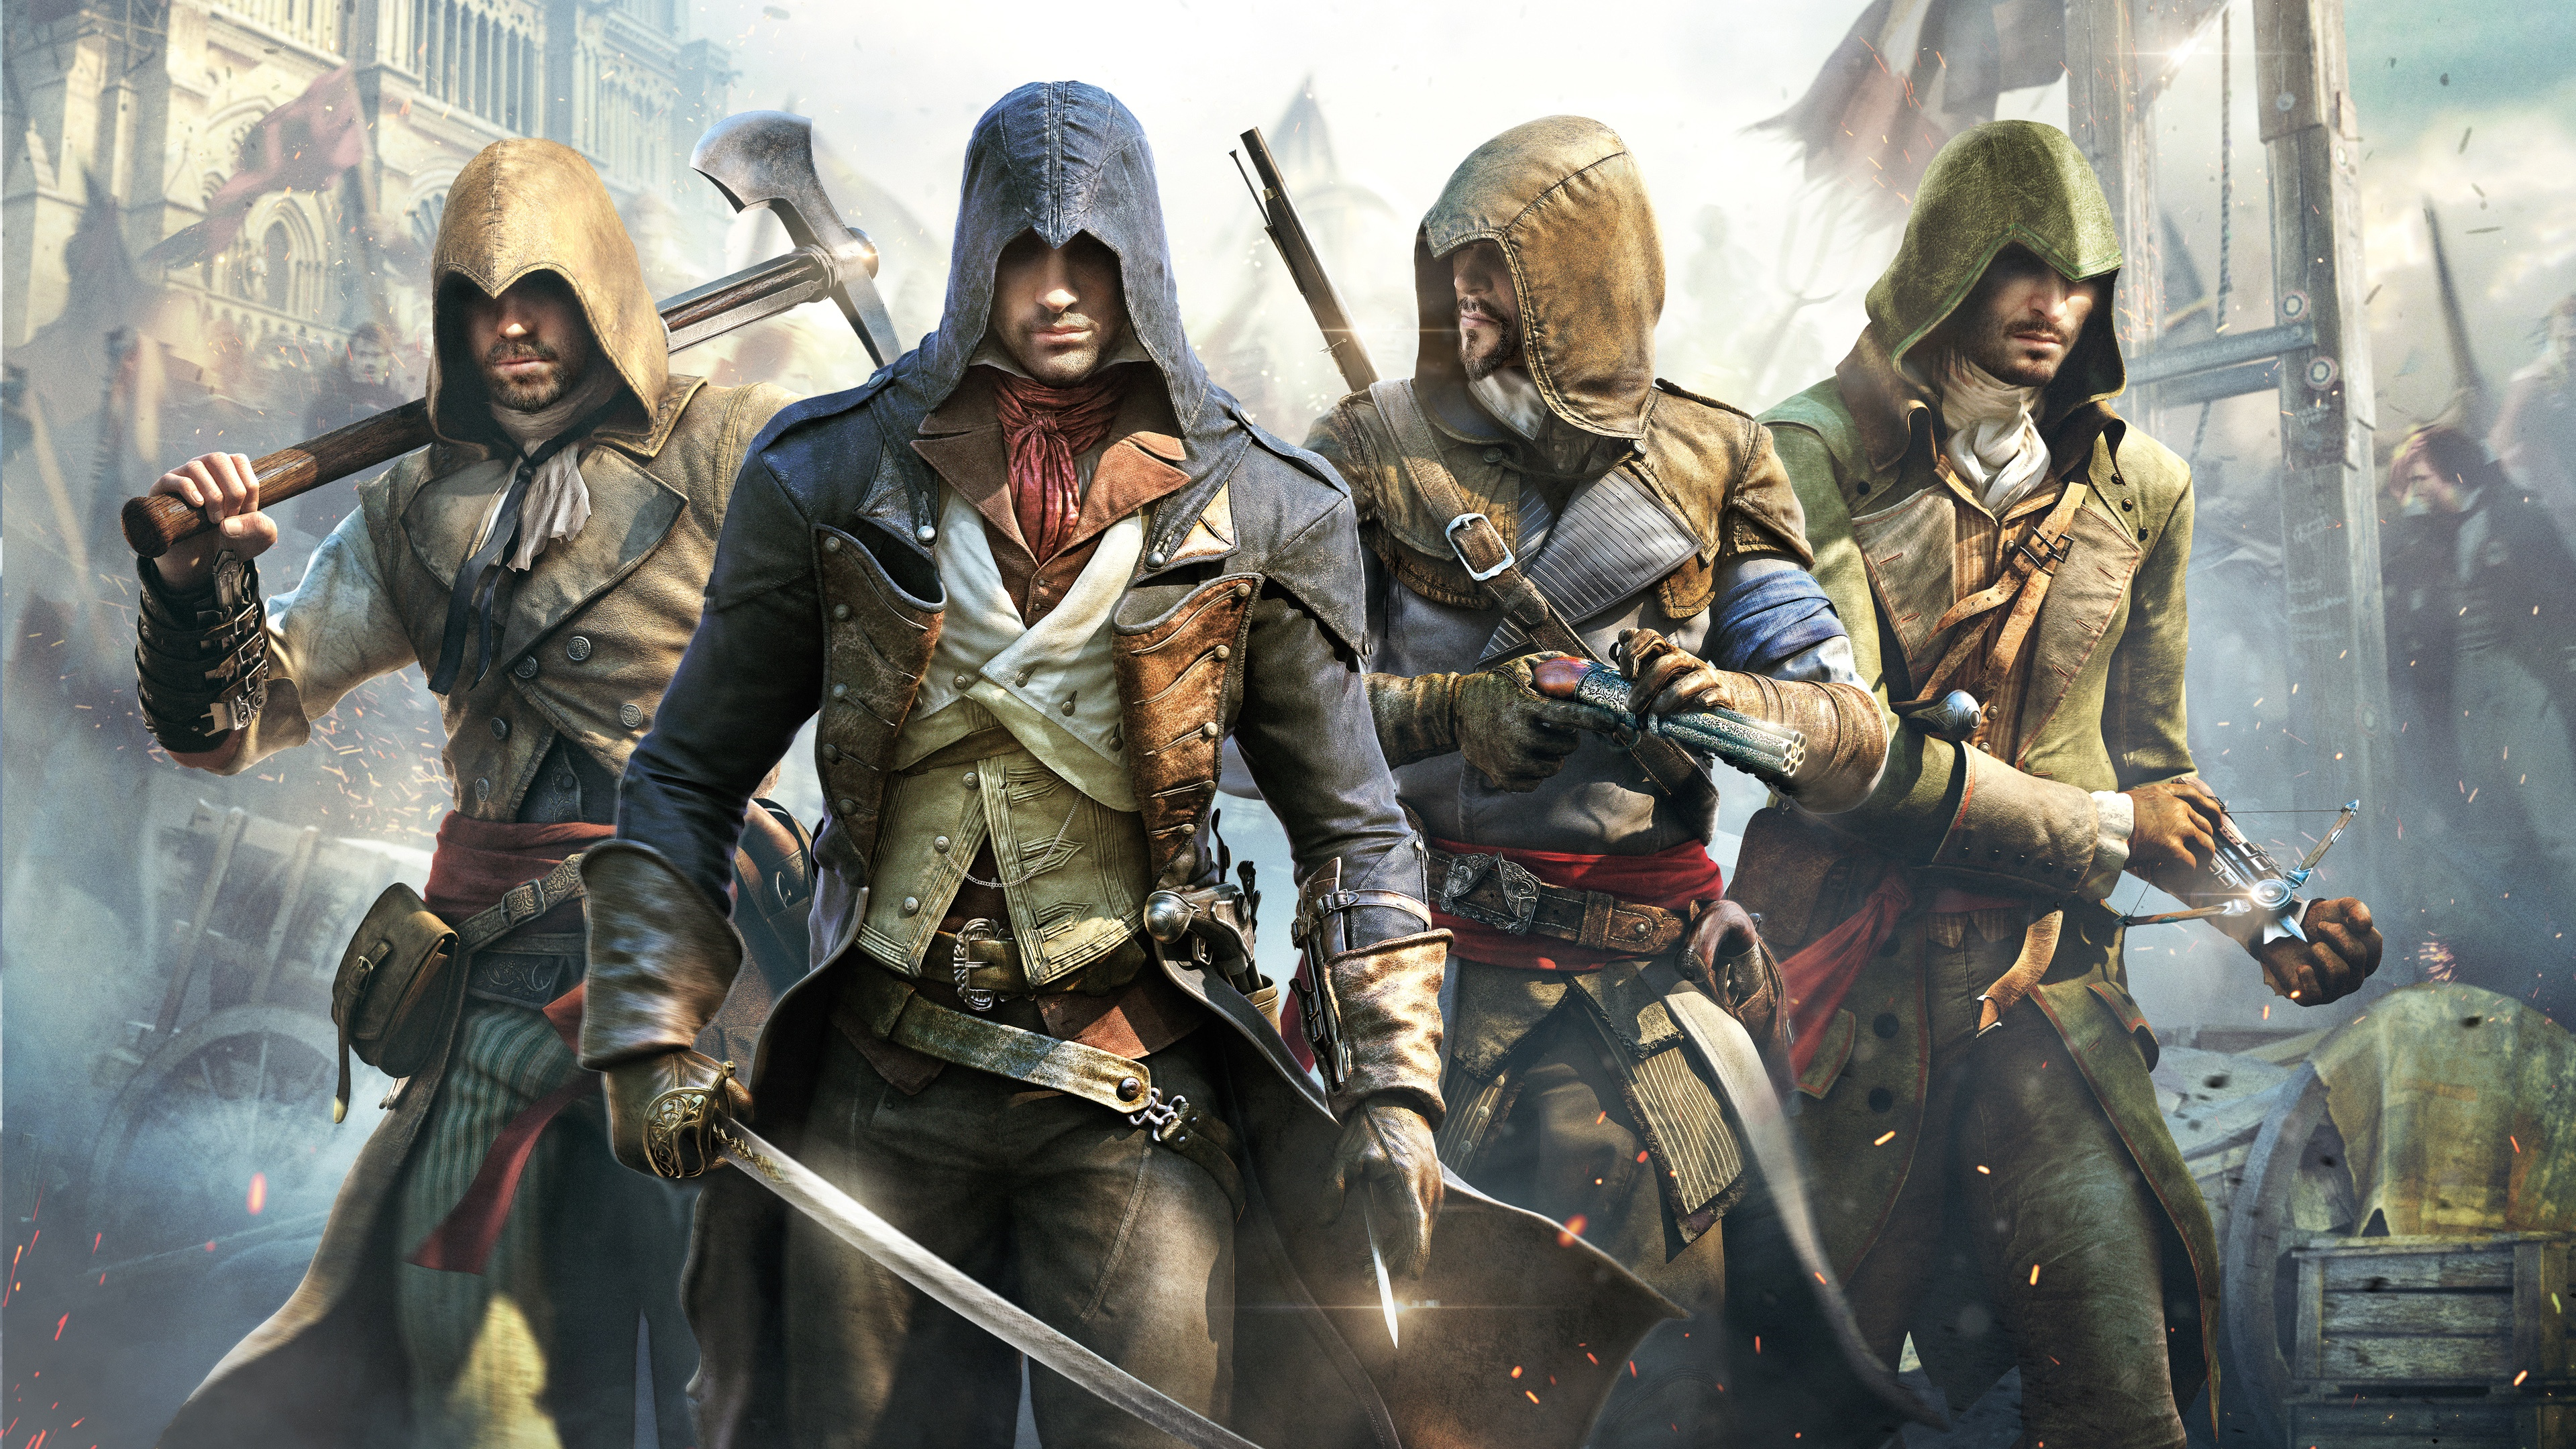 Assassin S Creed Unity Poster Wallpapers In Jpg Format For Free Download